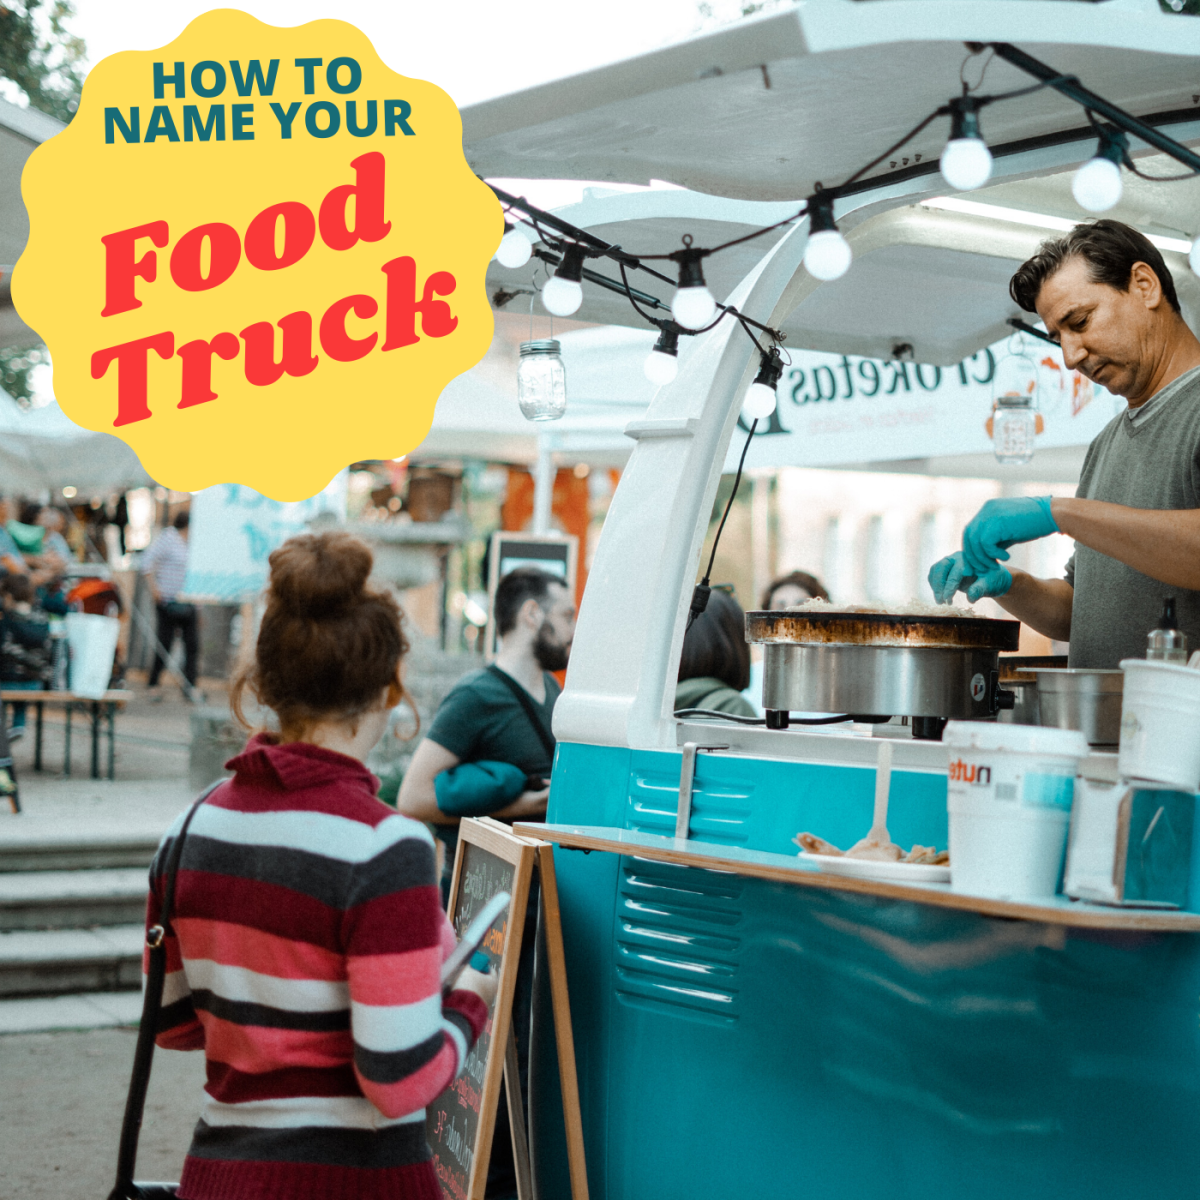 80 Food Truck Name Ideas